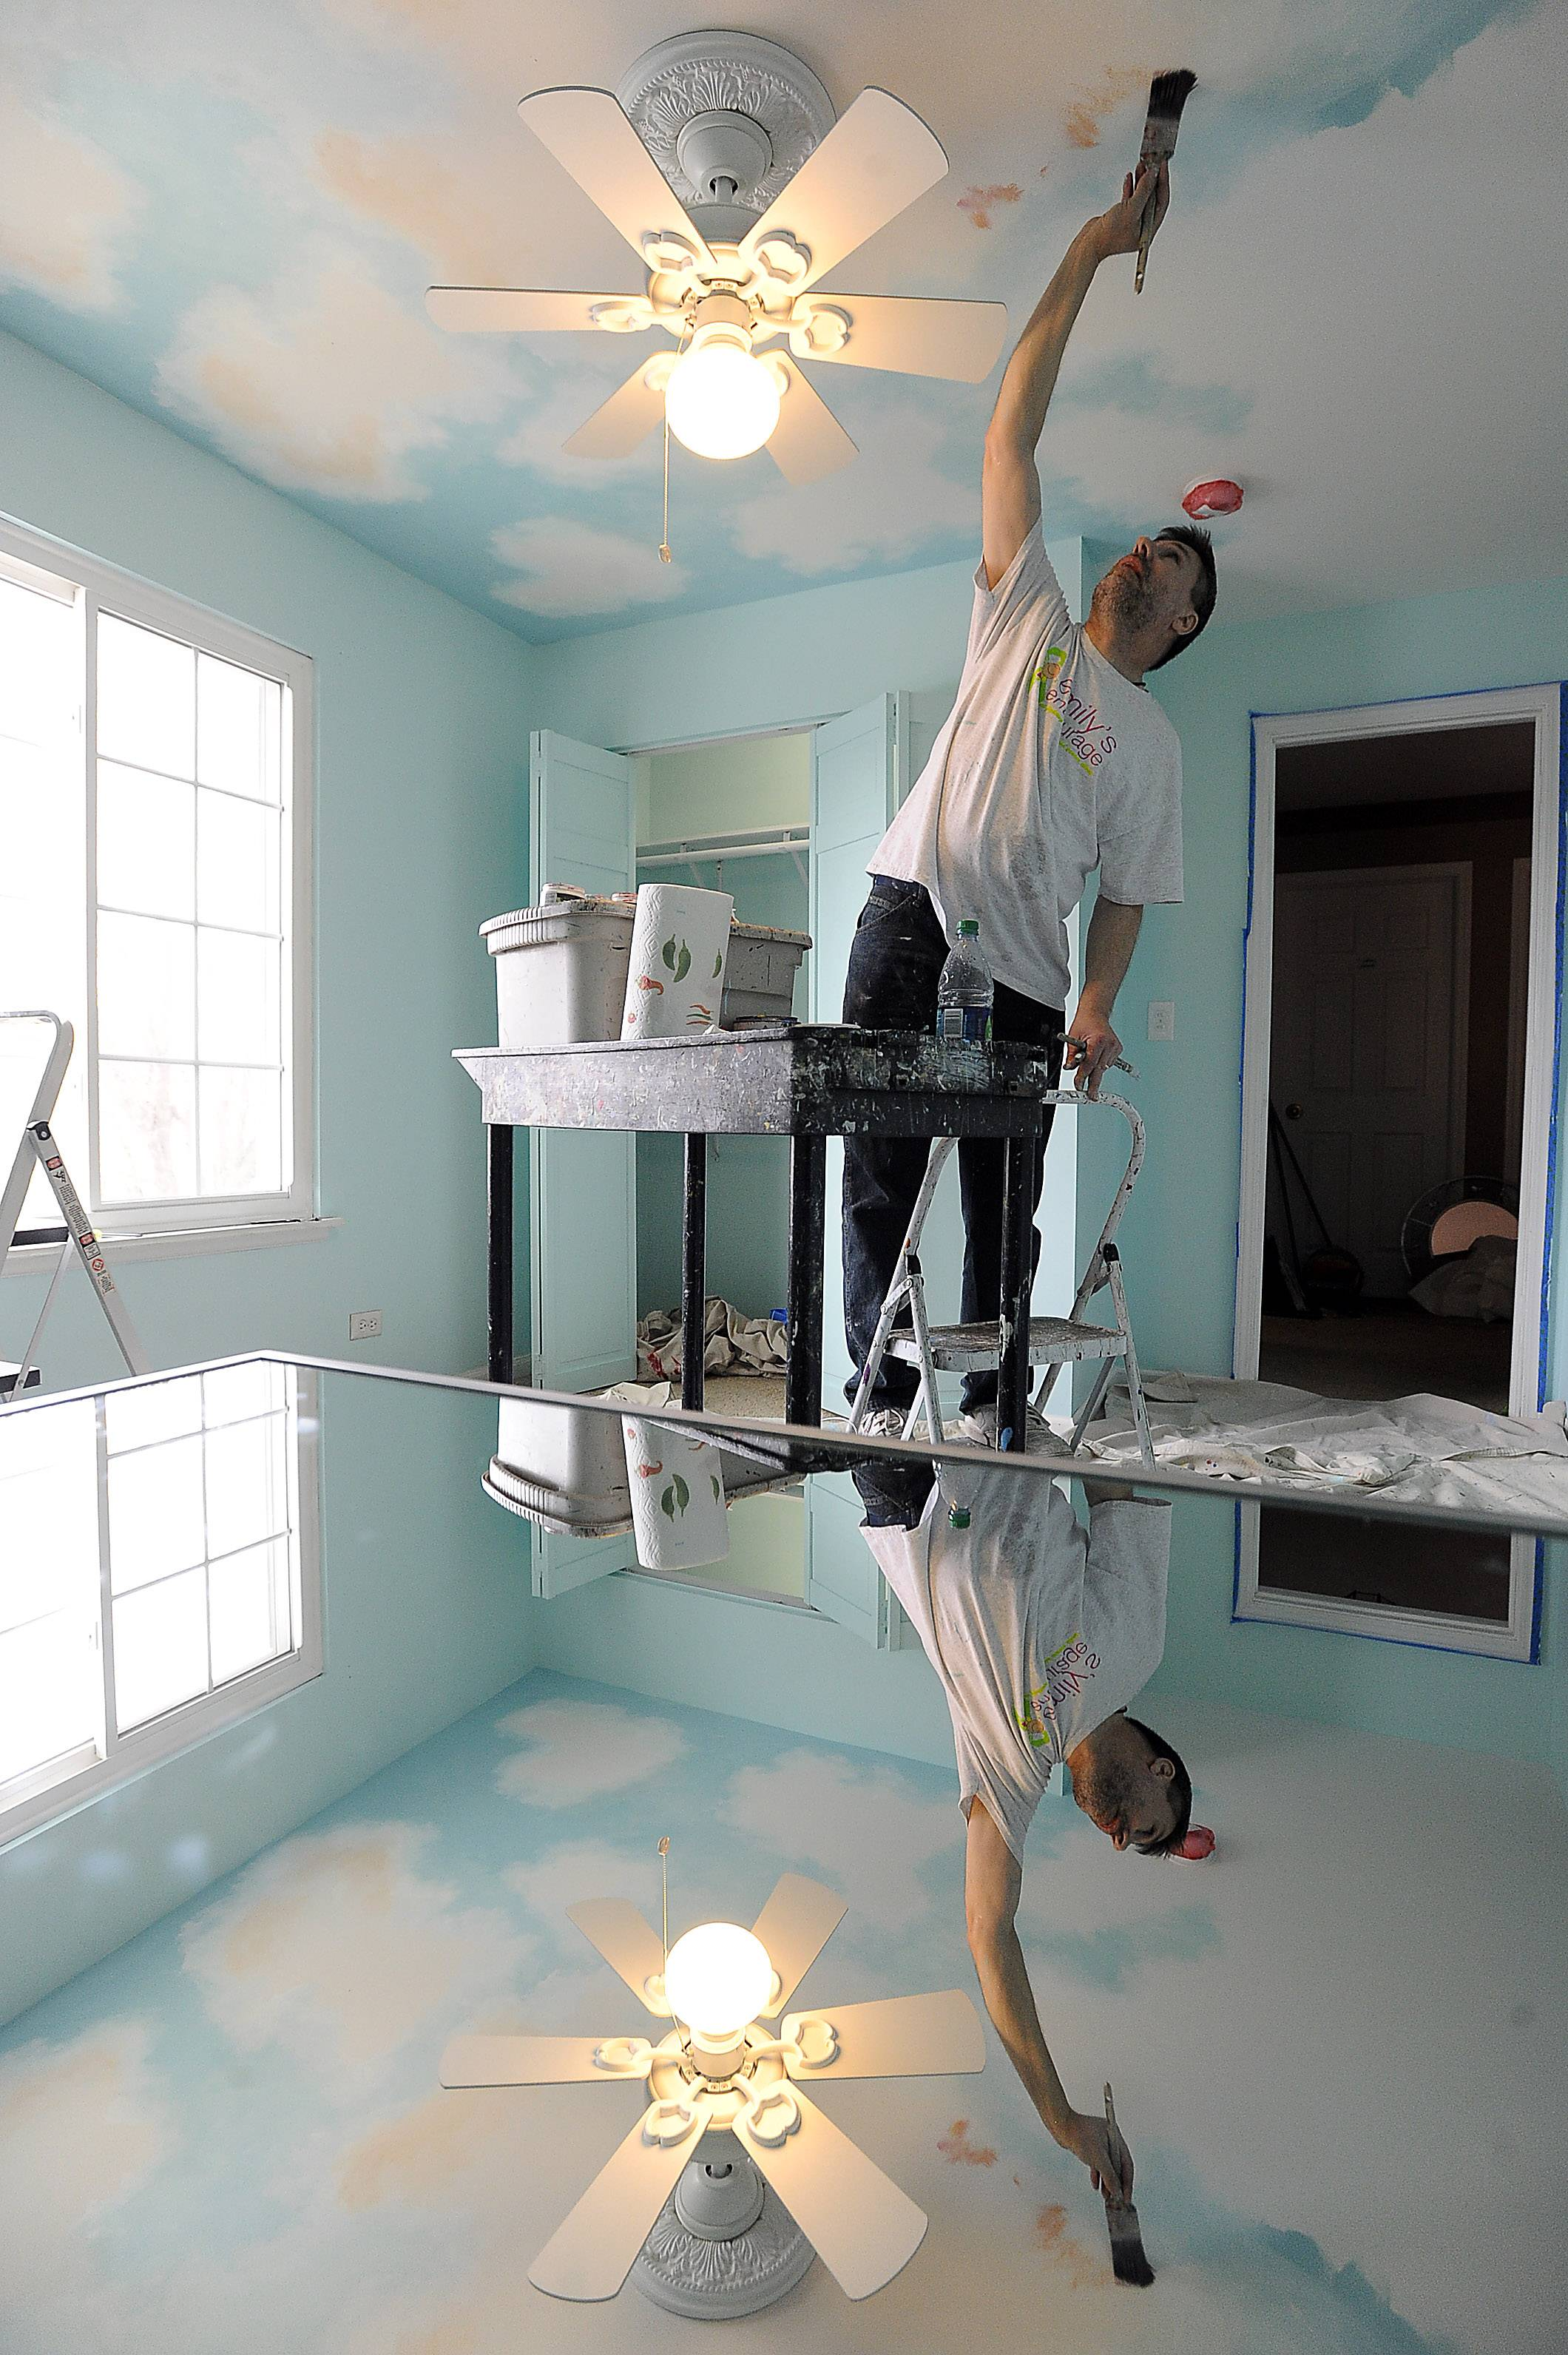 Ken Markiewicz of Naperville works on his ceiling mural masterpiece Saturday that is part of the makeover for a Bartlett girl with a life-threating medical condition.